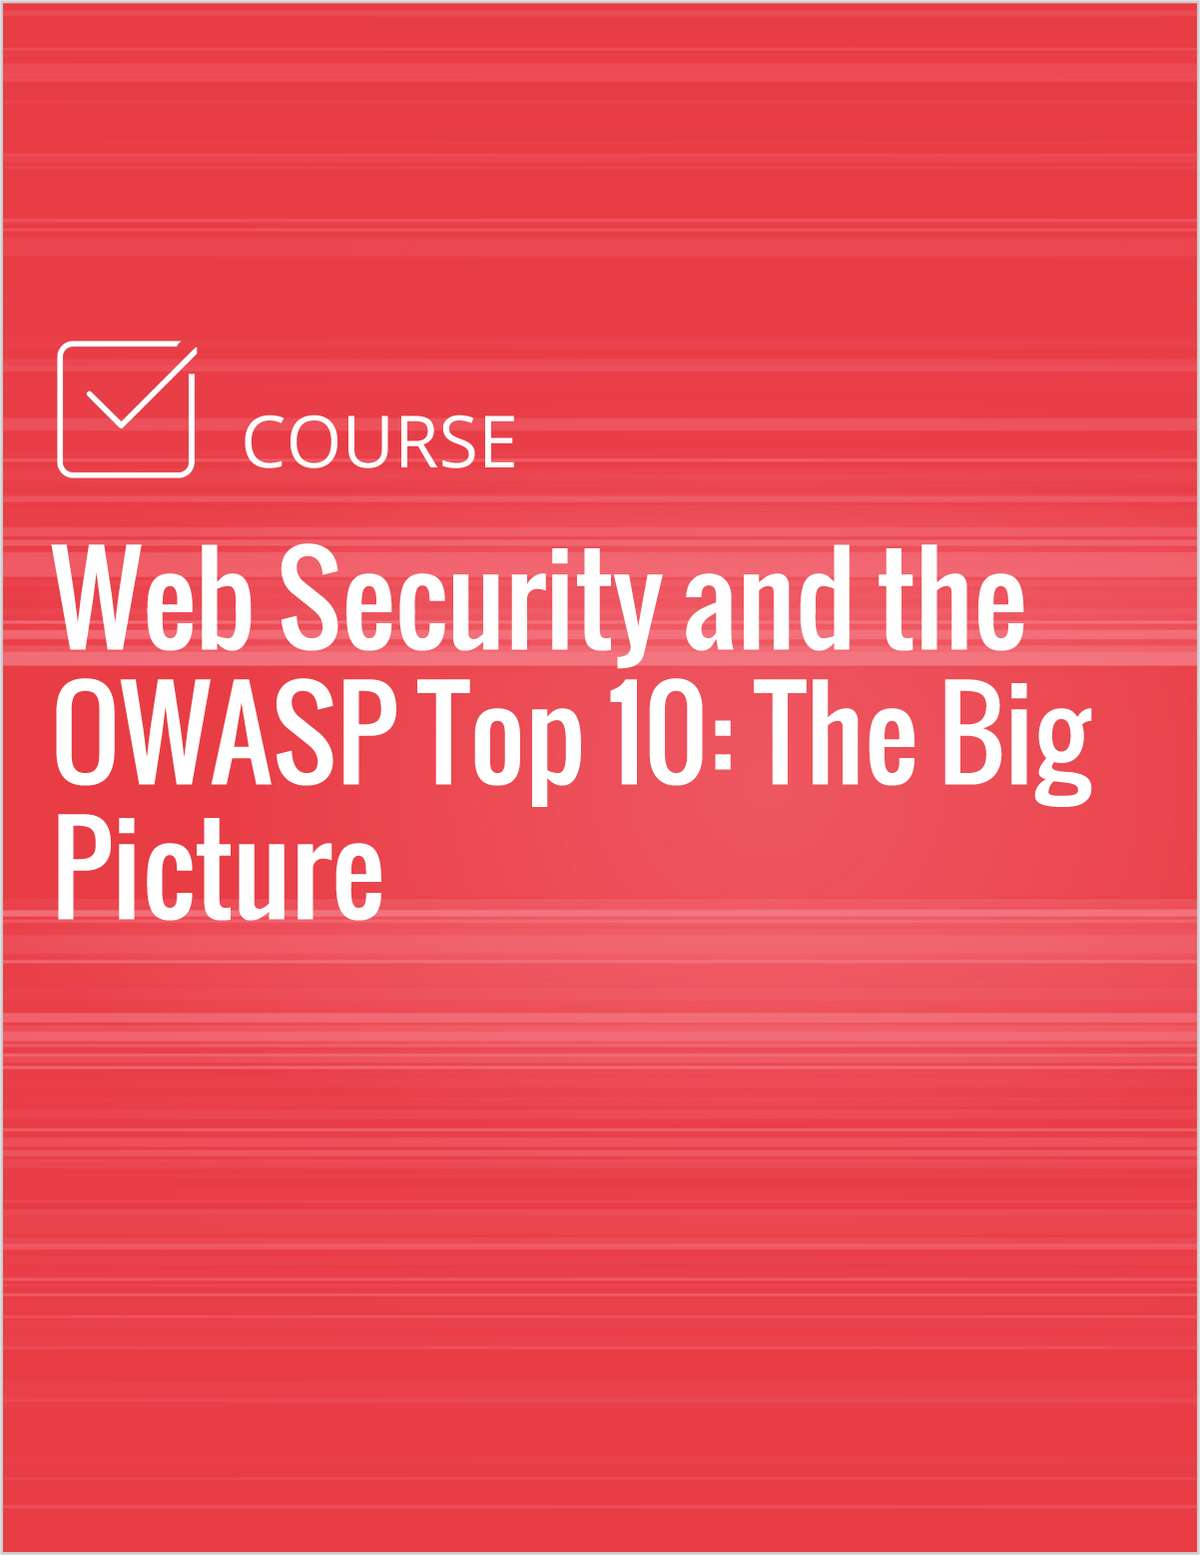 Web Security and the OWASP Top 10: The Big Picture